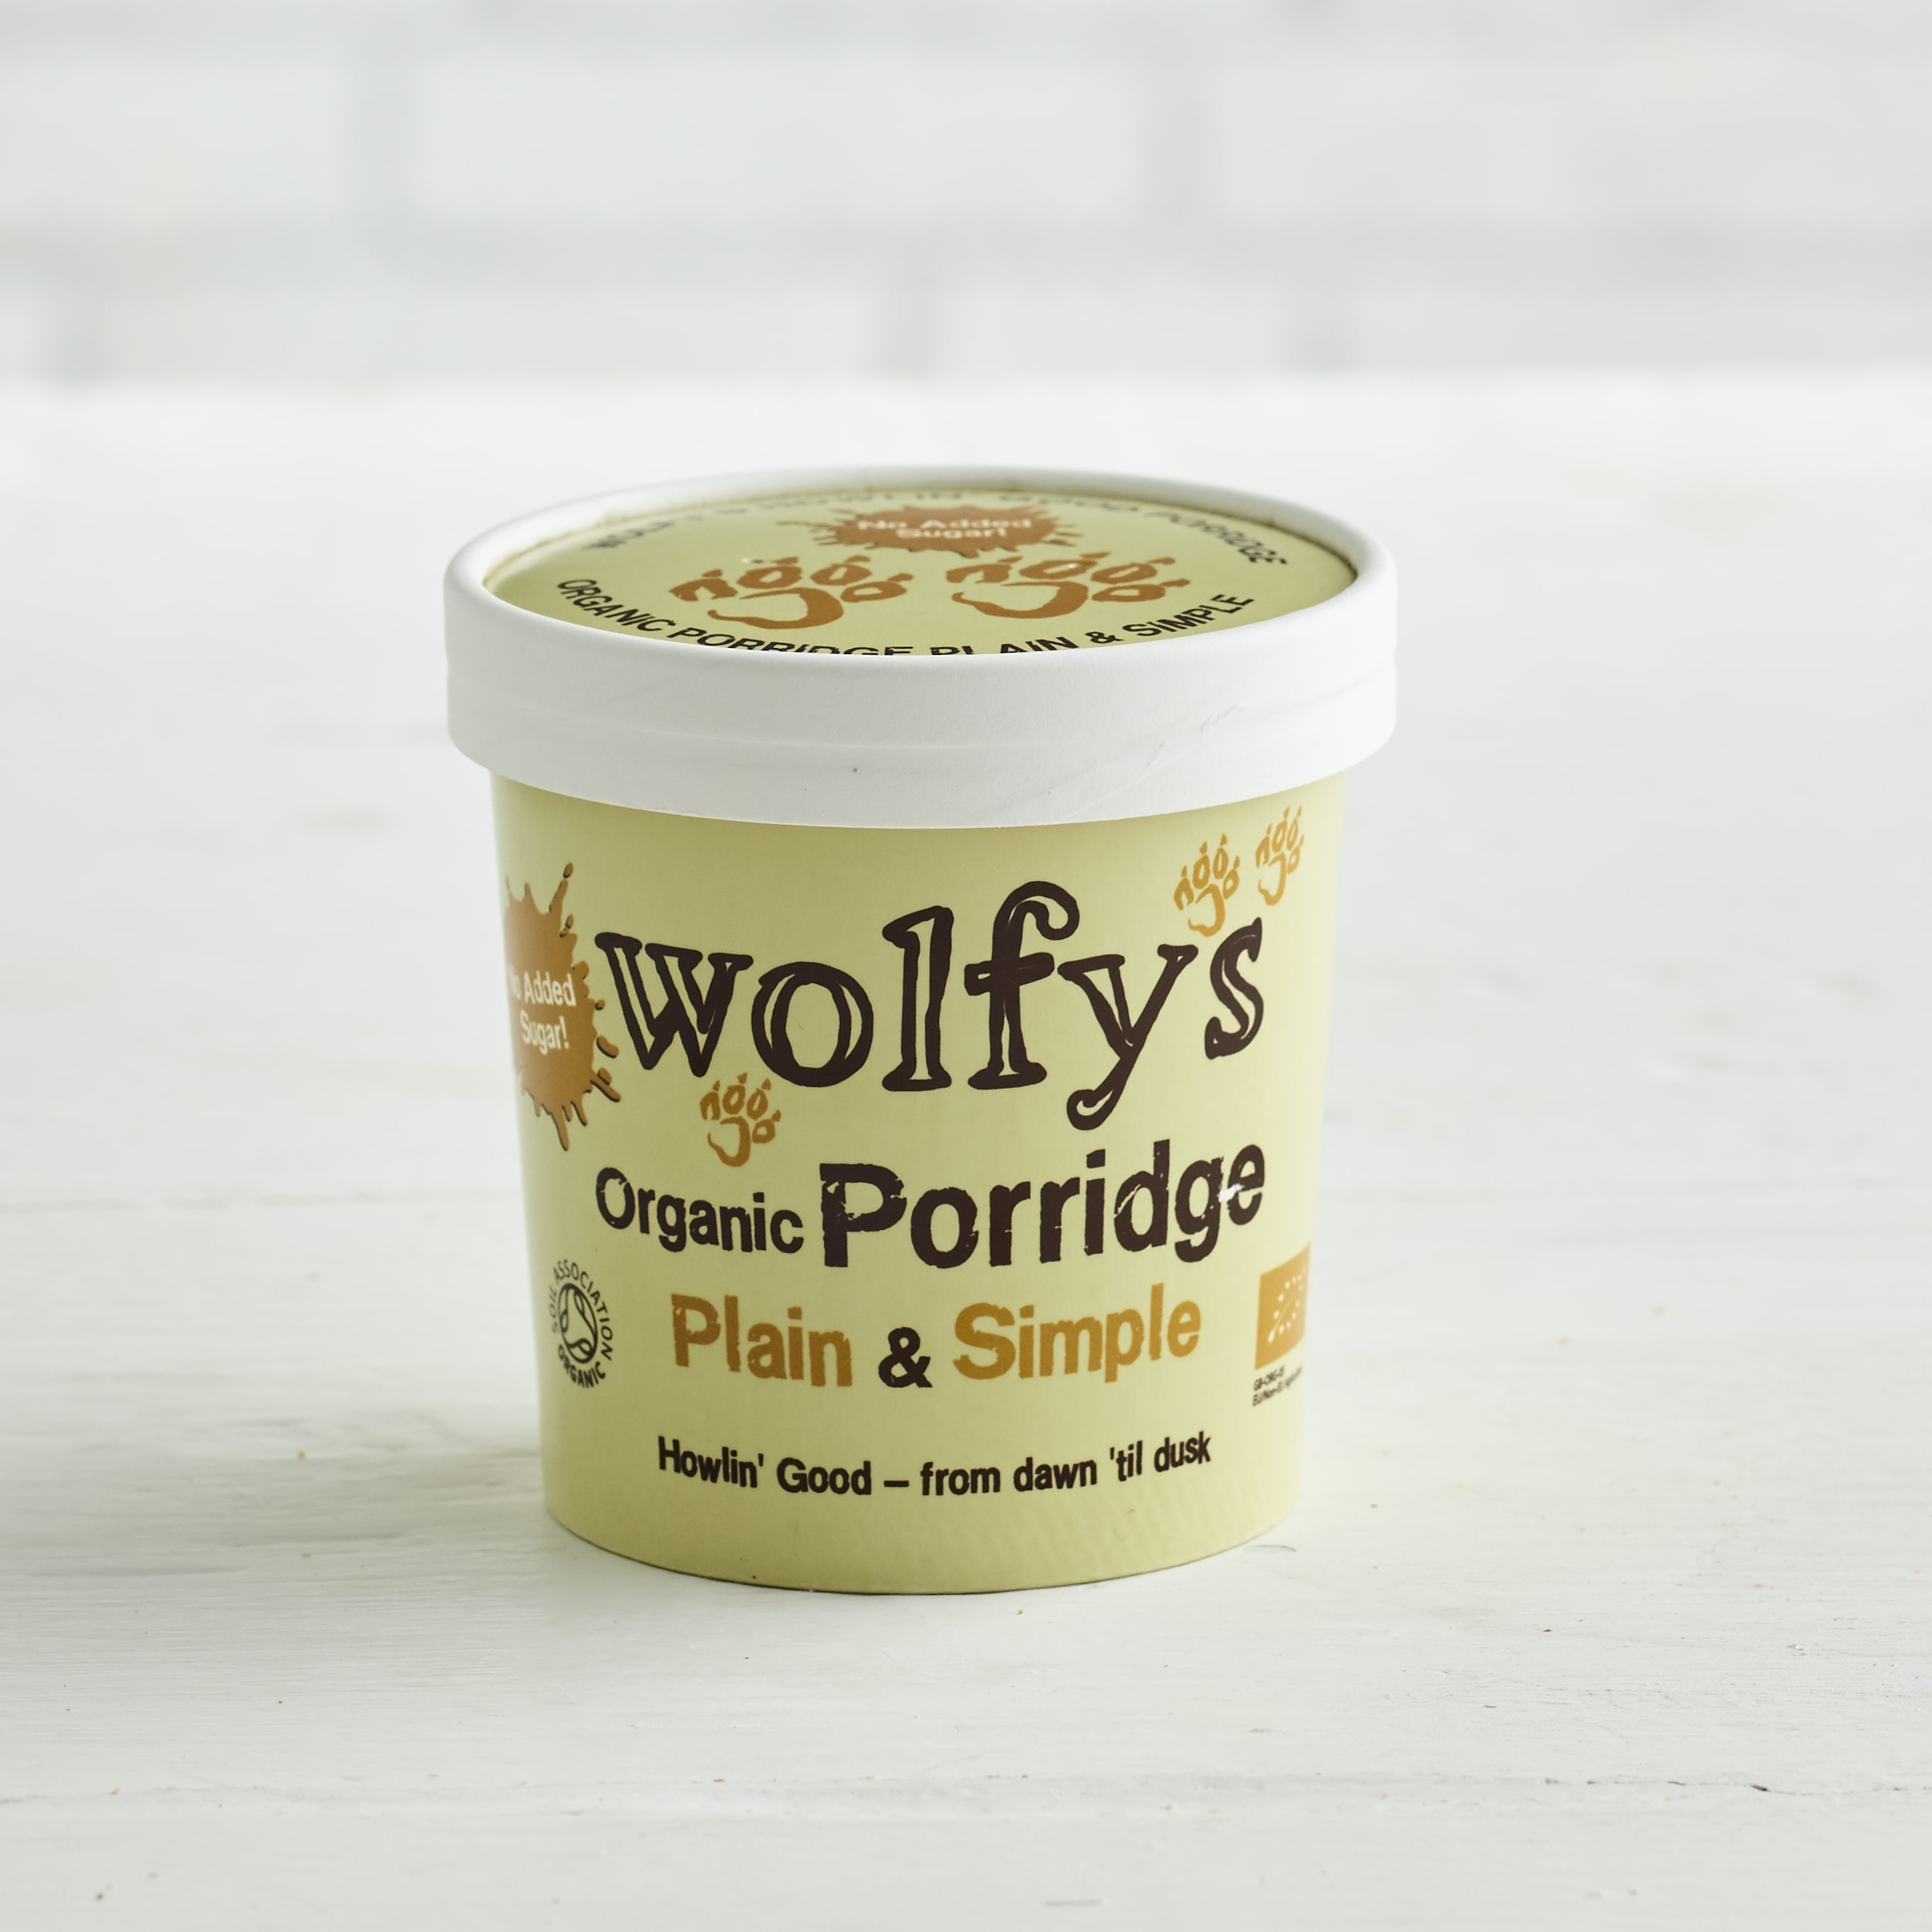 Wolfys Organic Porridge Pot Plain & Simple, 60g